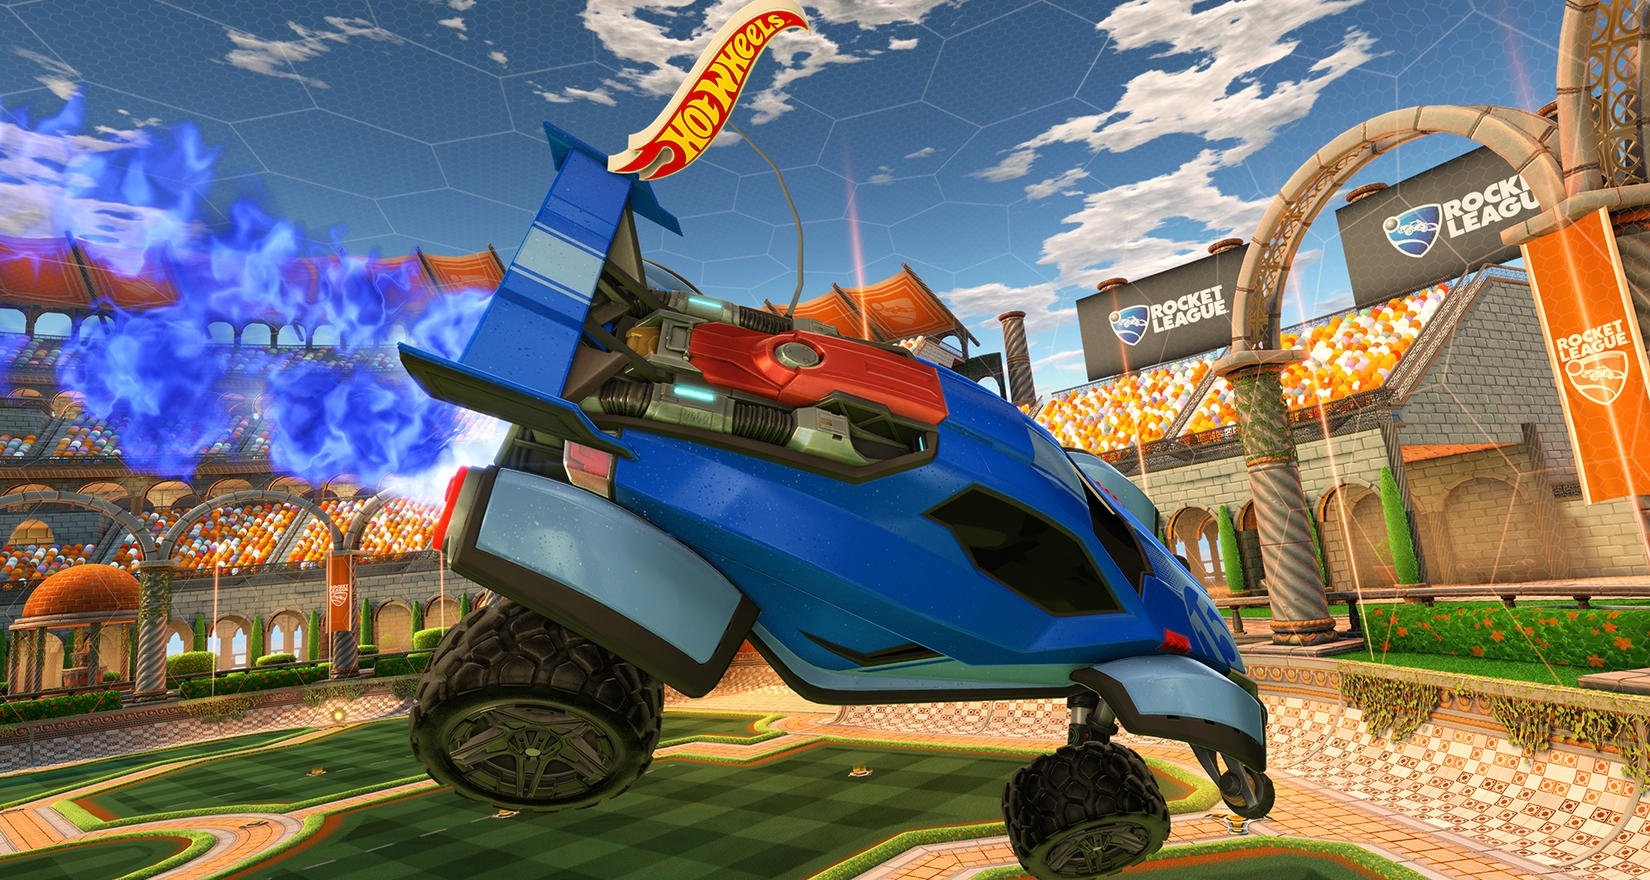 Rocket League removing crates loot boxes this year